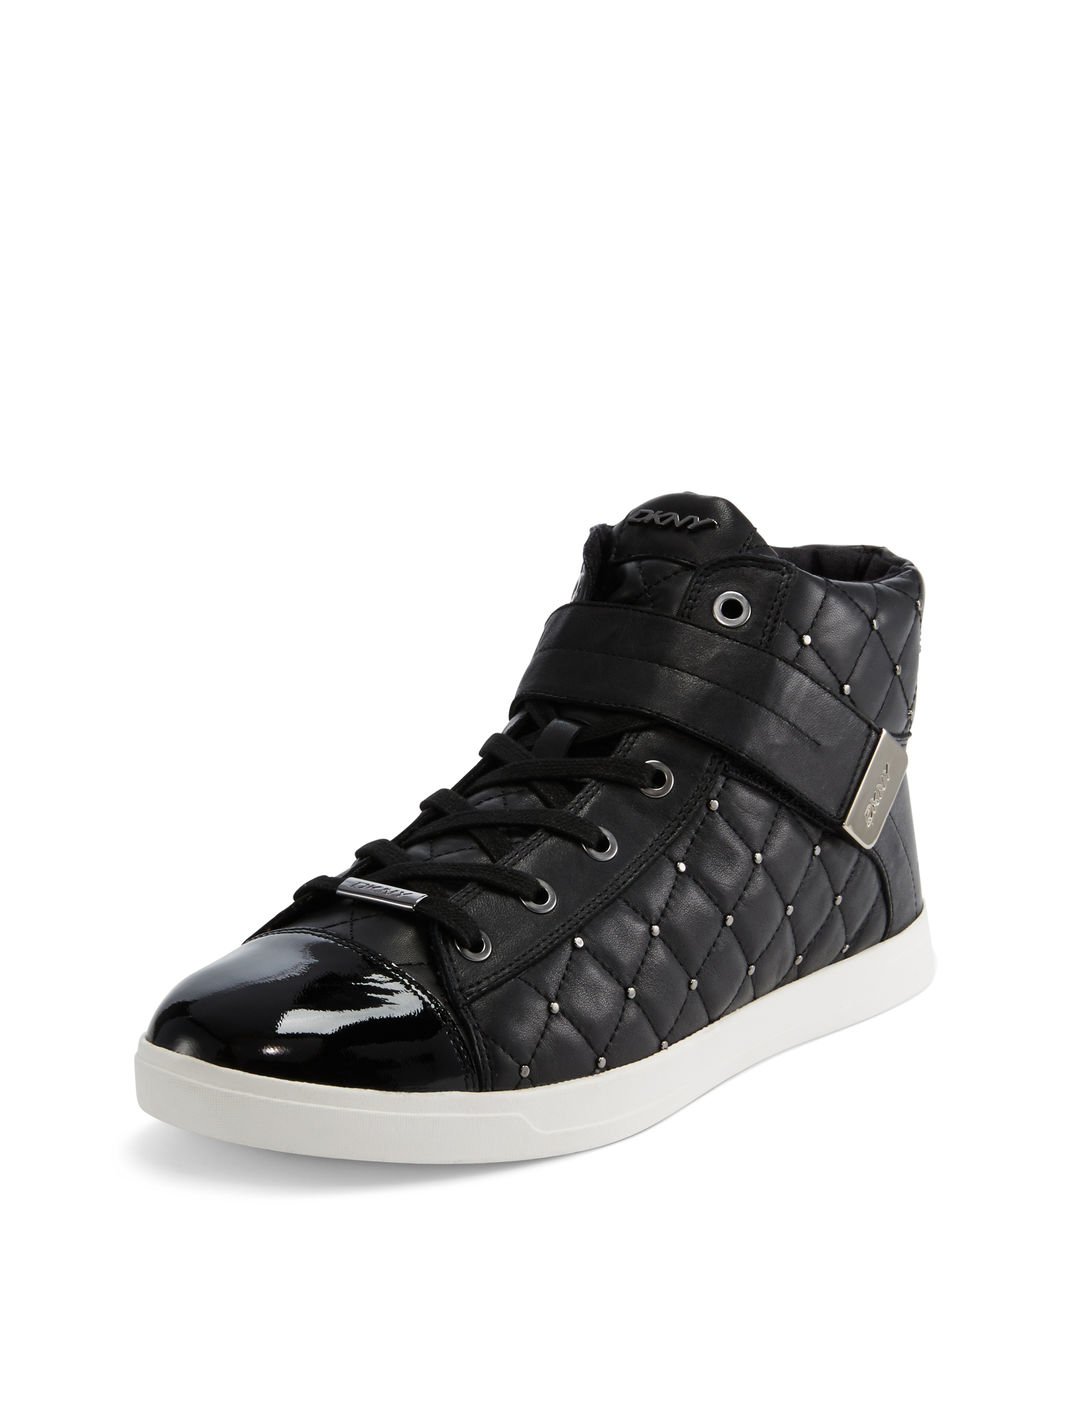 dkny betty quilted sneaker in black lyst